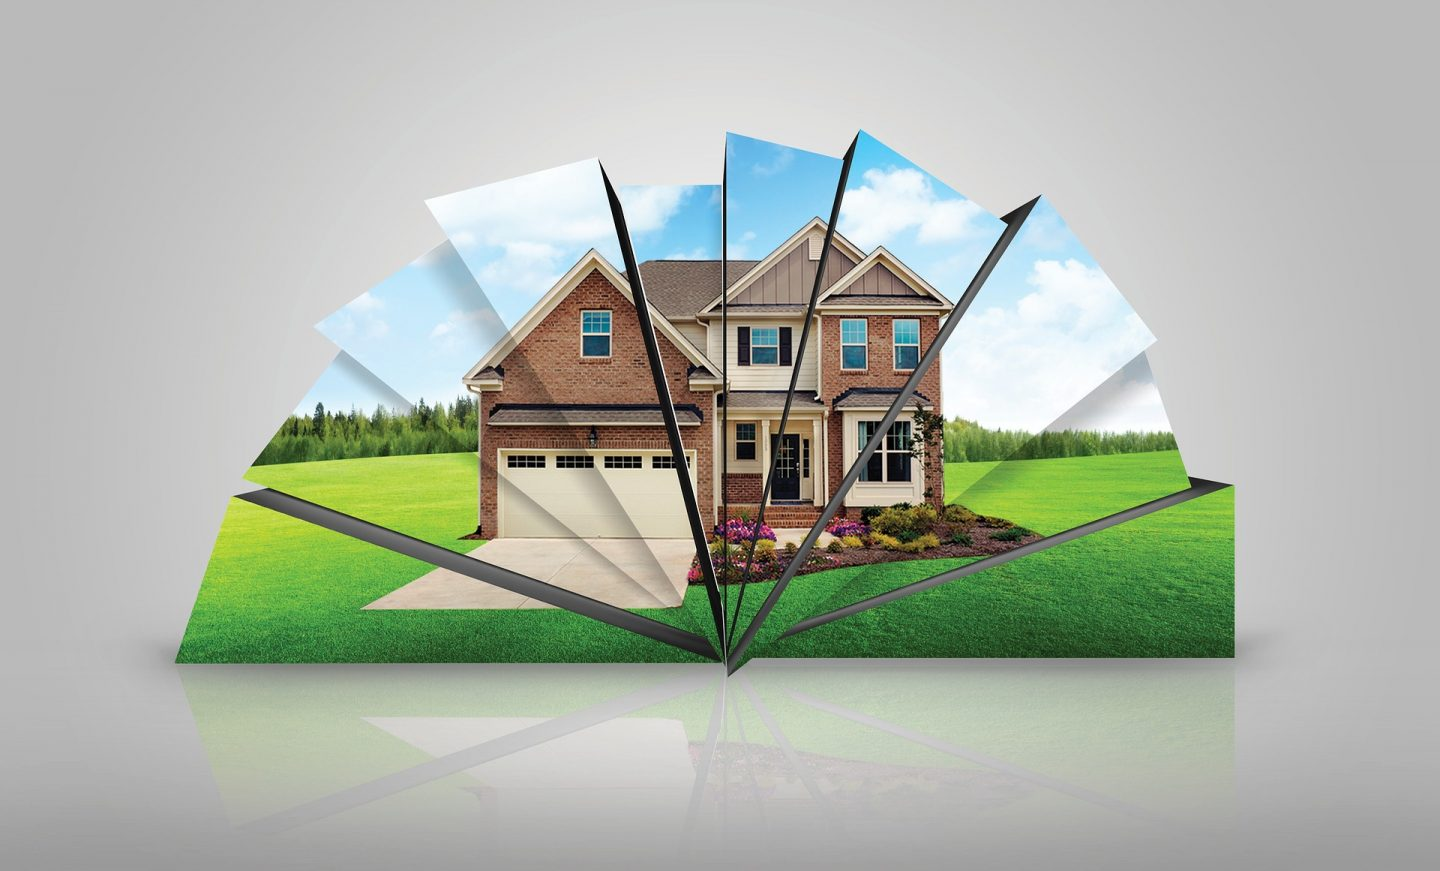 HOW TO SUCCESSFULLY MANAGE YOUR RENTAL PROPERTY WITHOUT STRESSING YOURSELF OUT